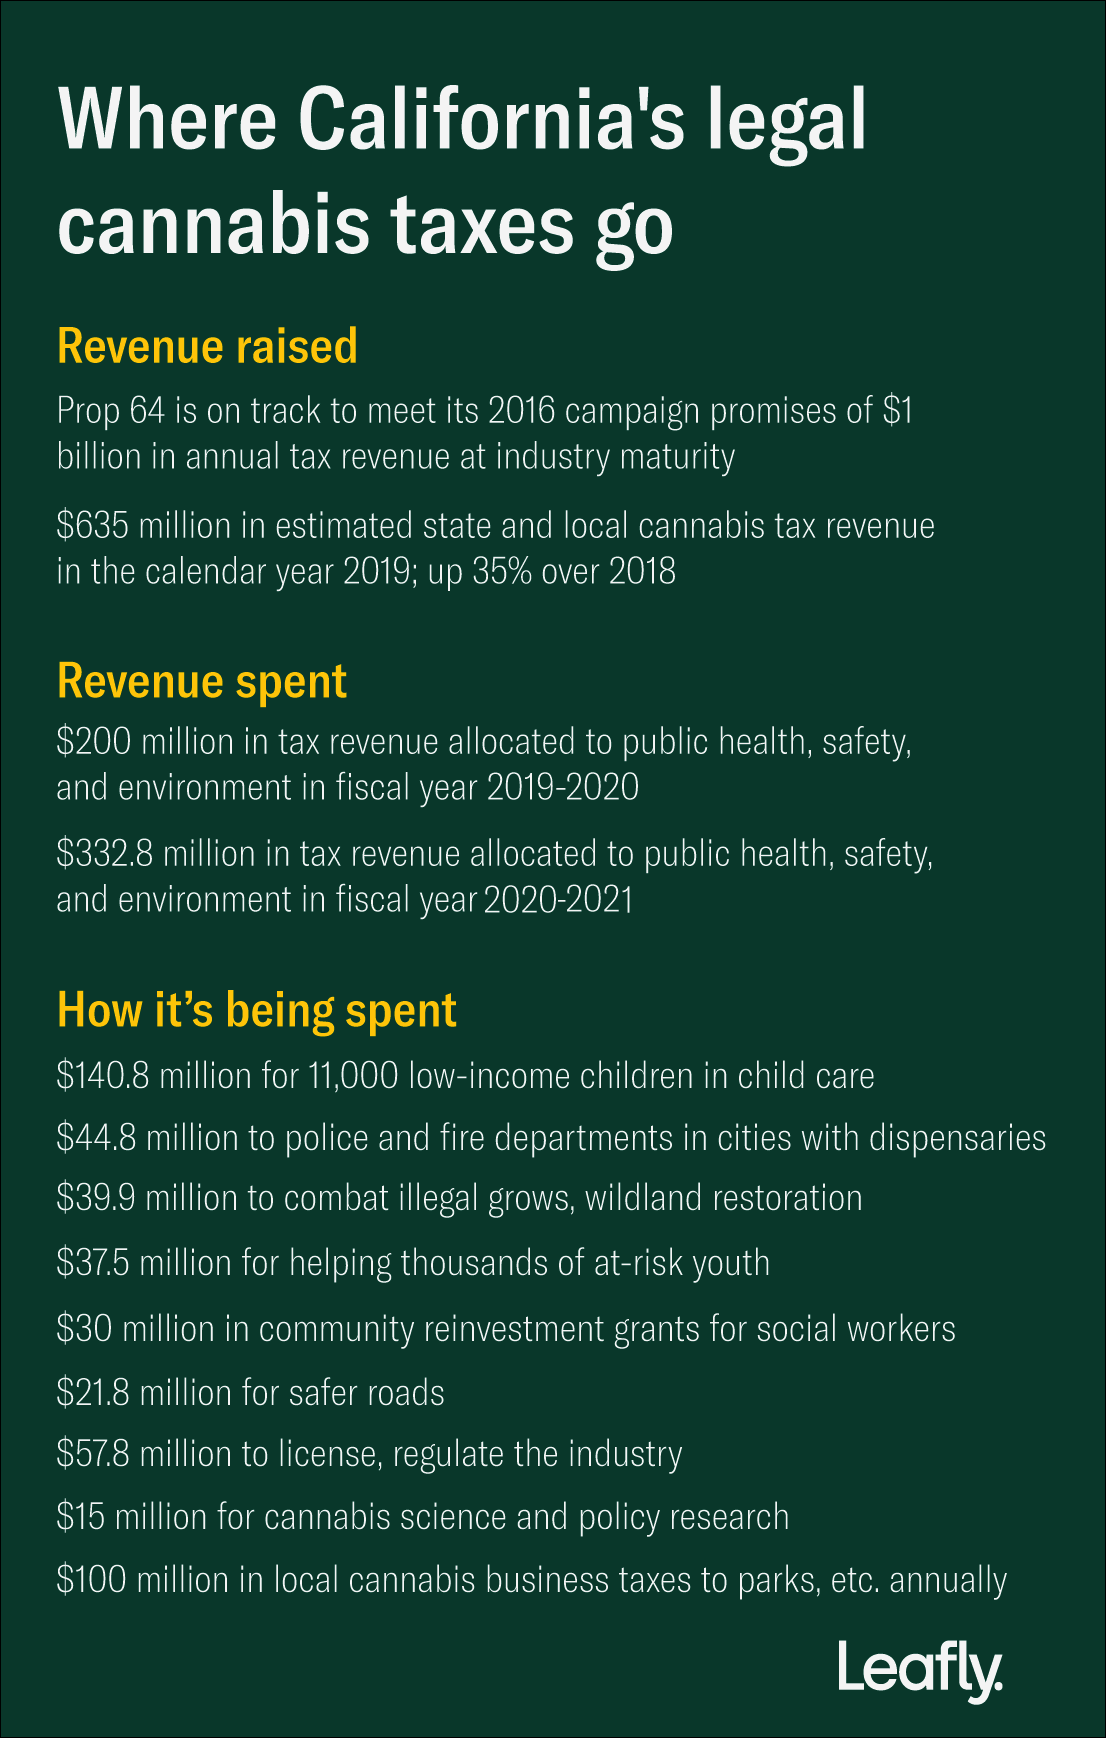 legalization, tax revenue, prop 64